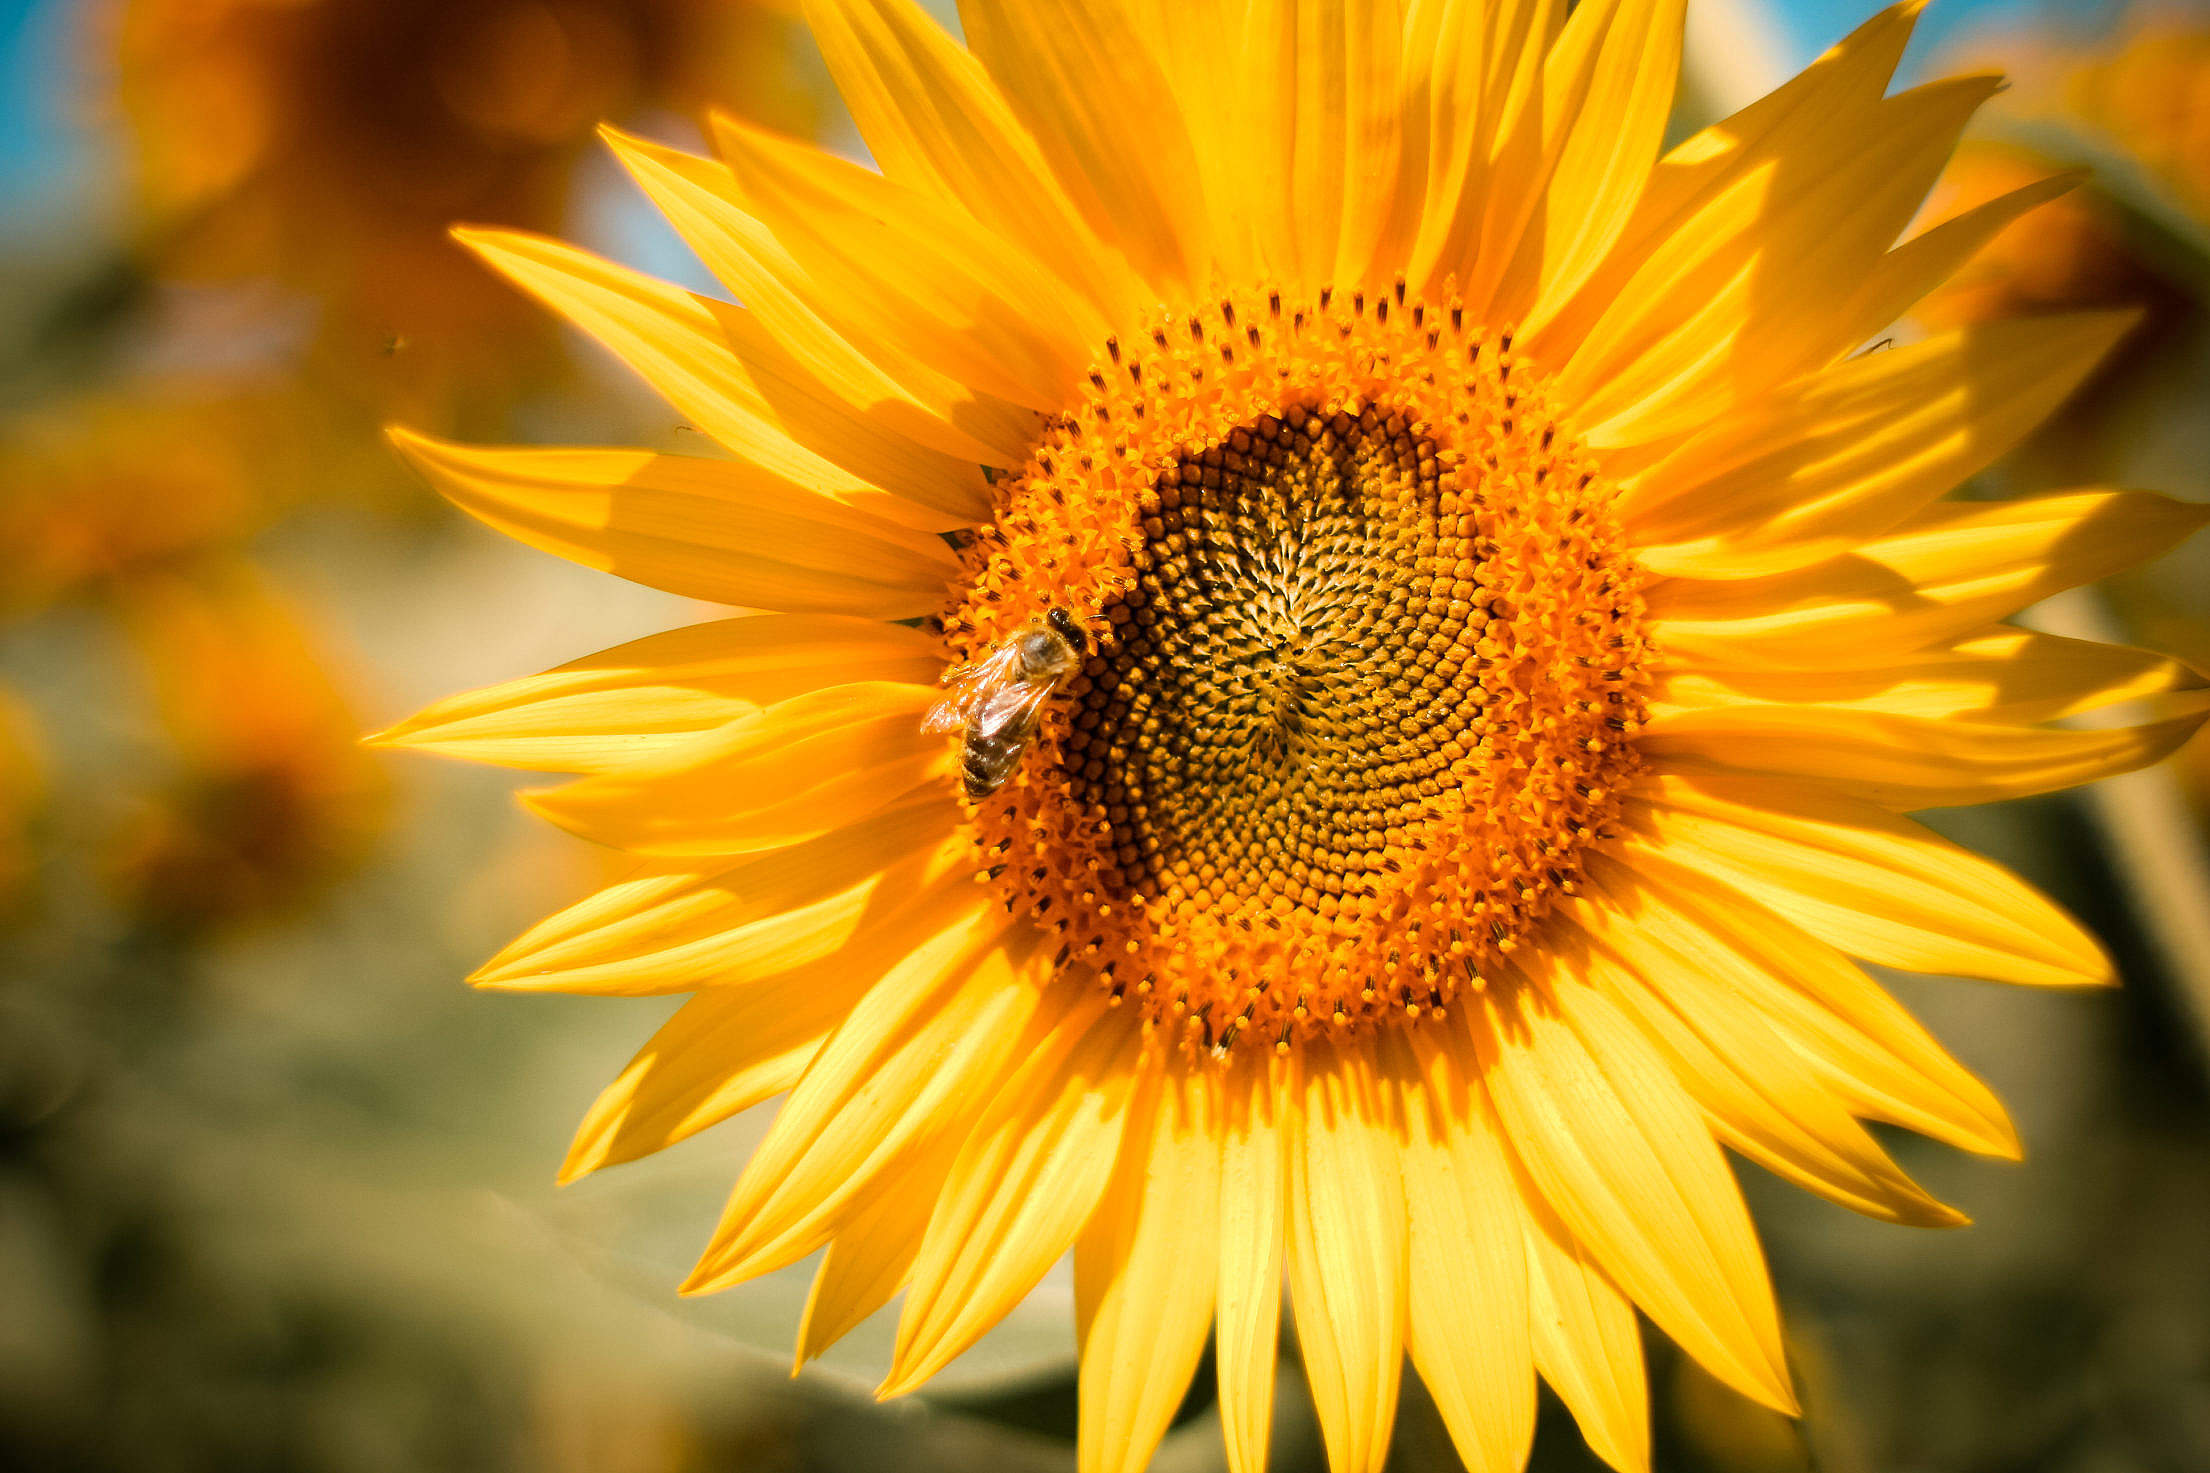 Sunflower with a Bee Free Stock Photo